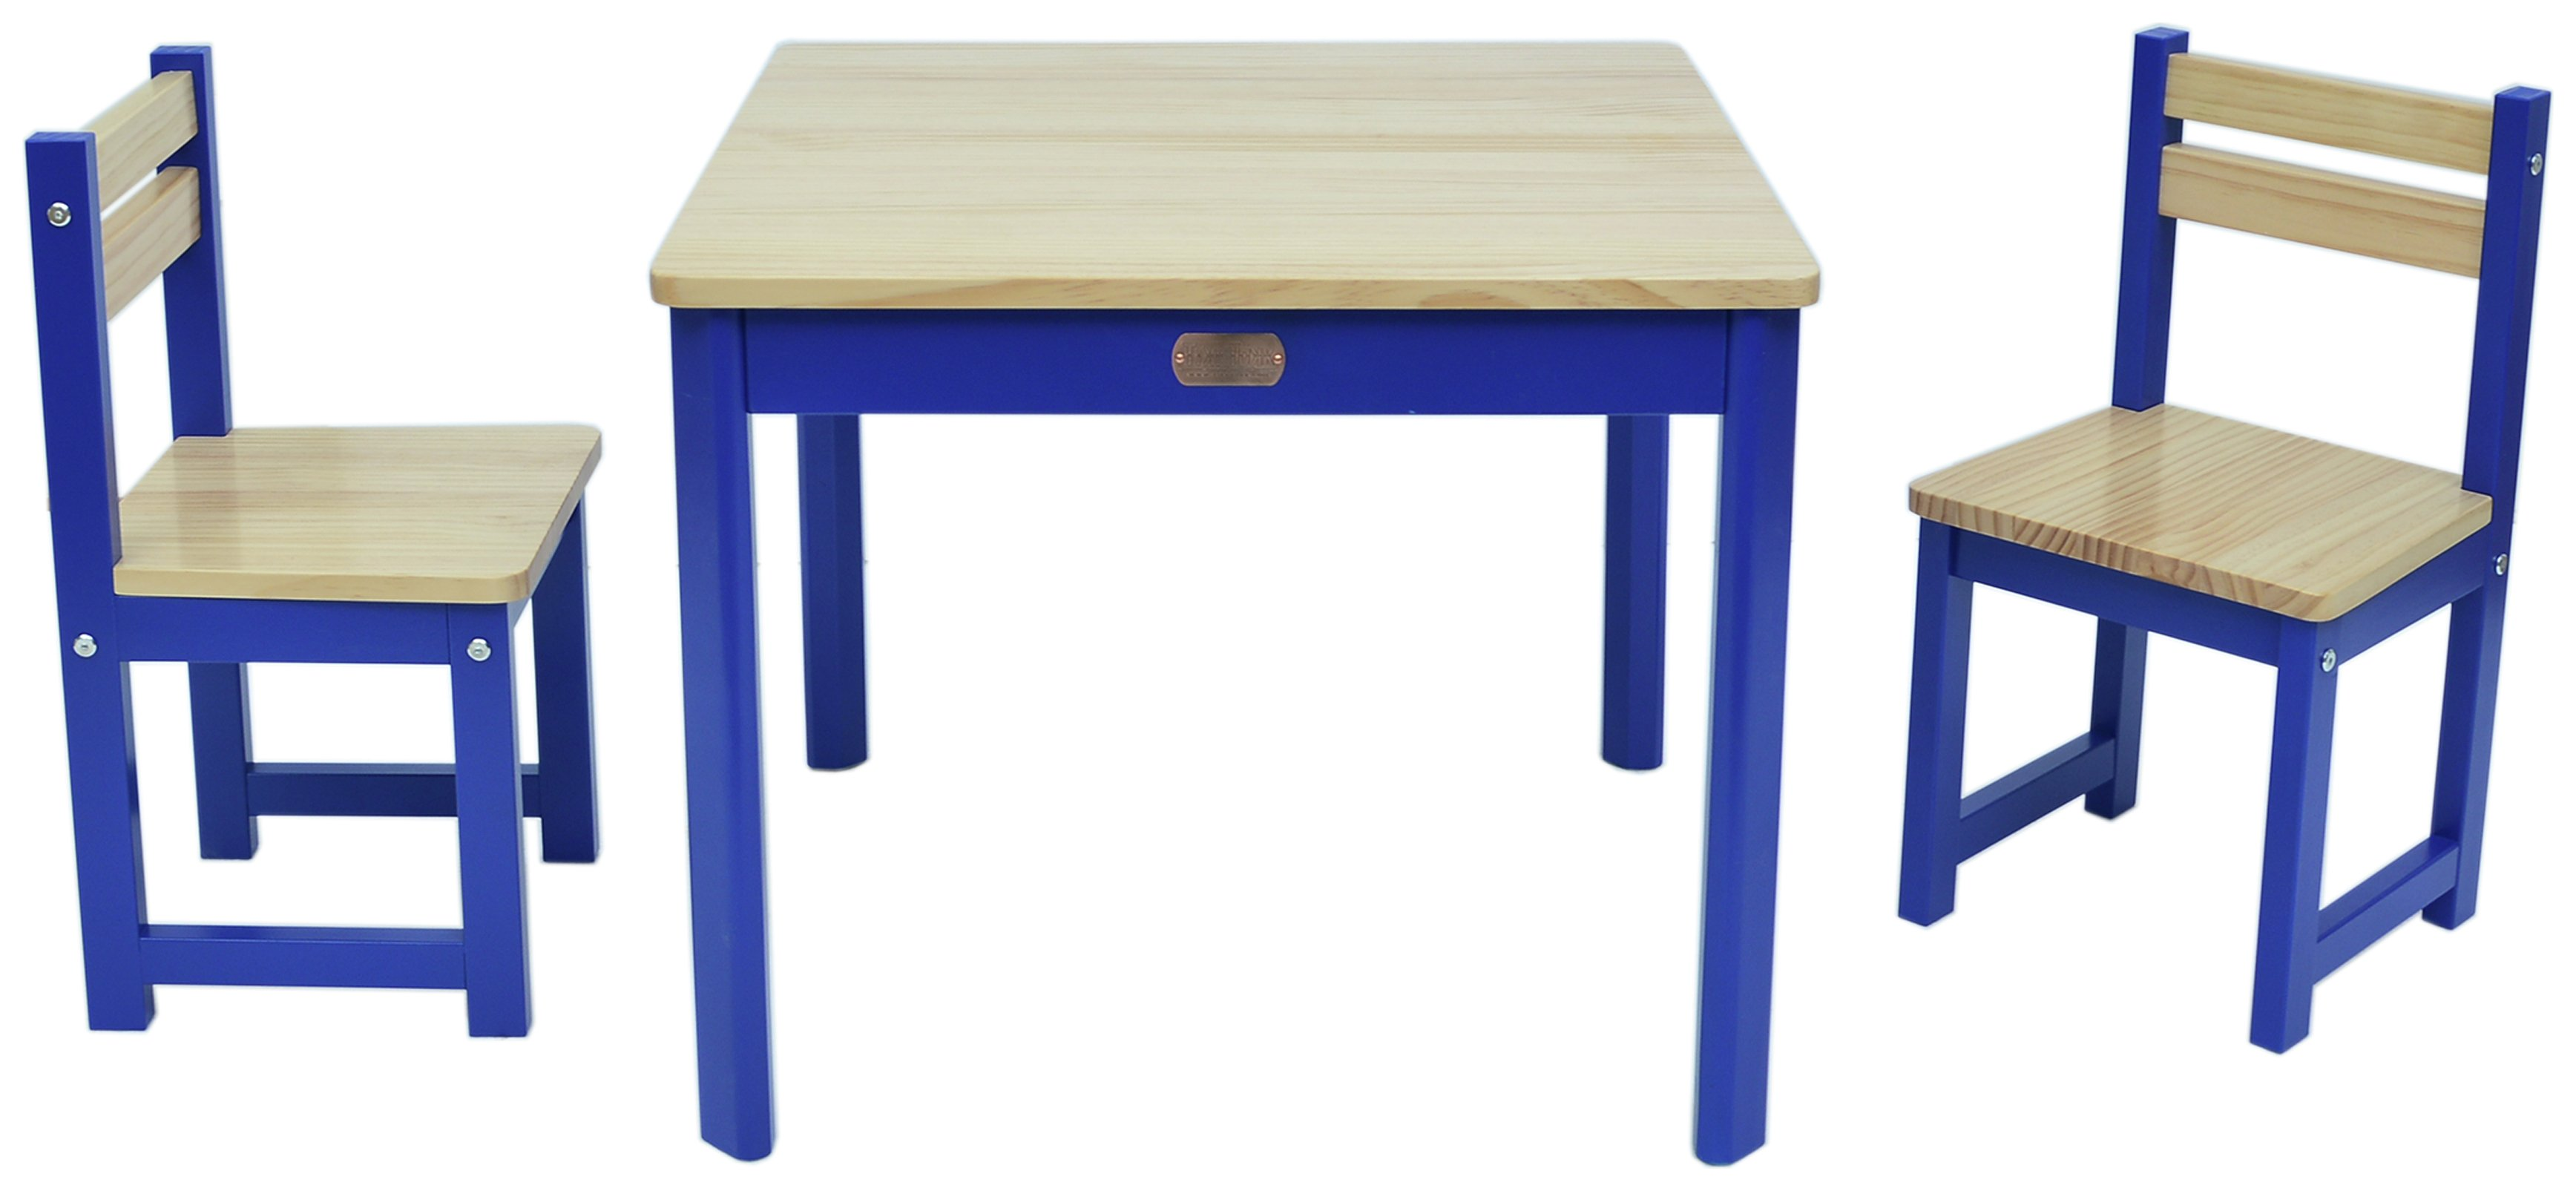 Tikk tokk boss wooden nursery table and chairs set octer for 99 normal table